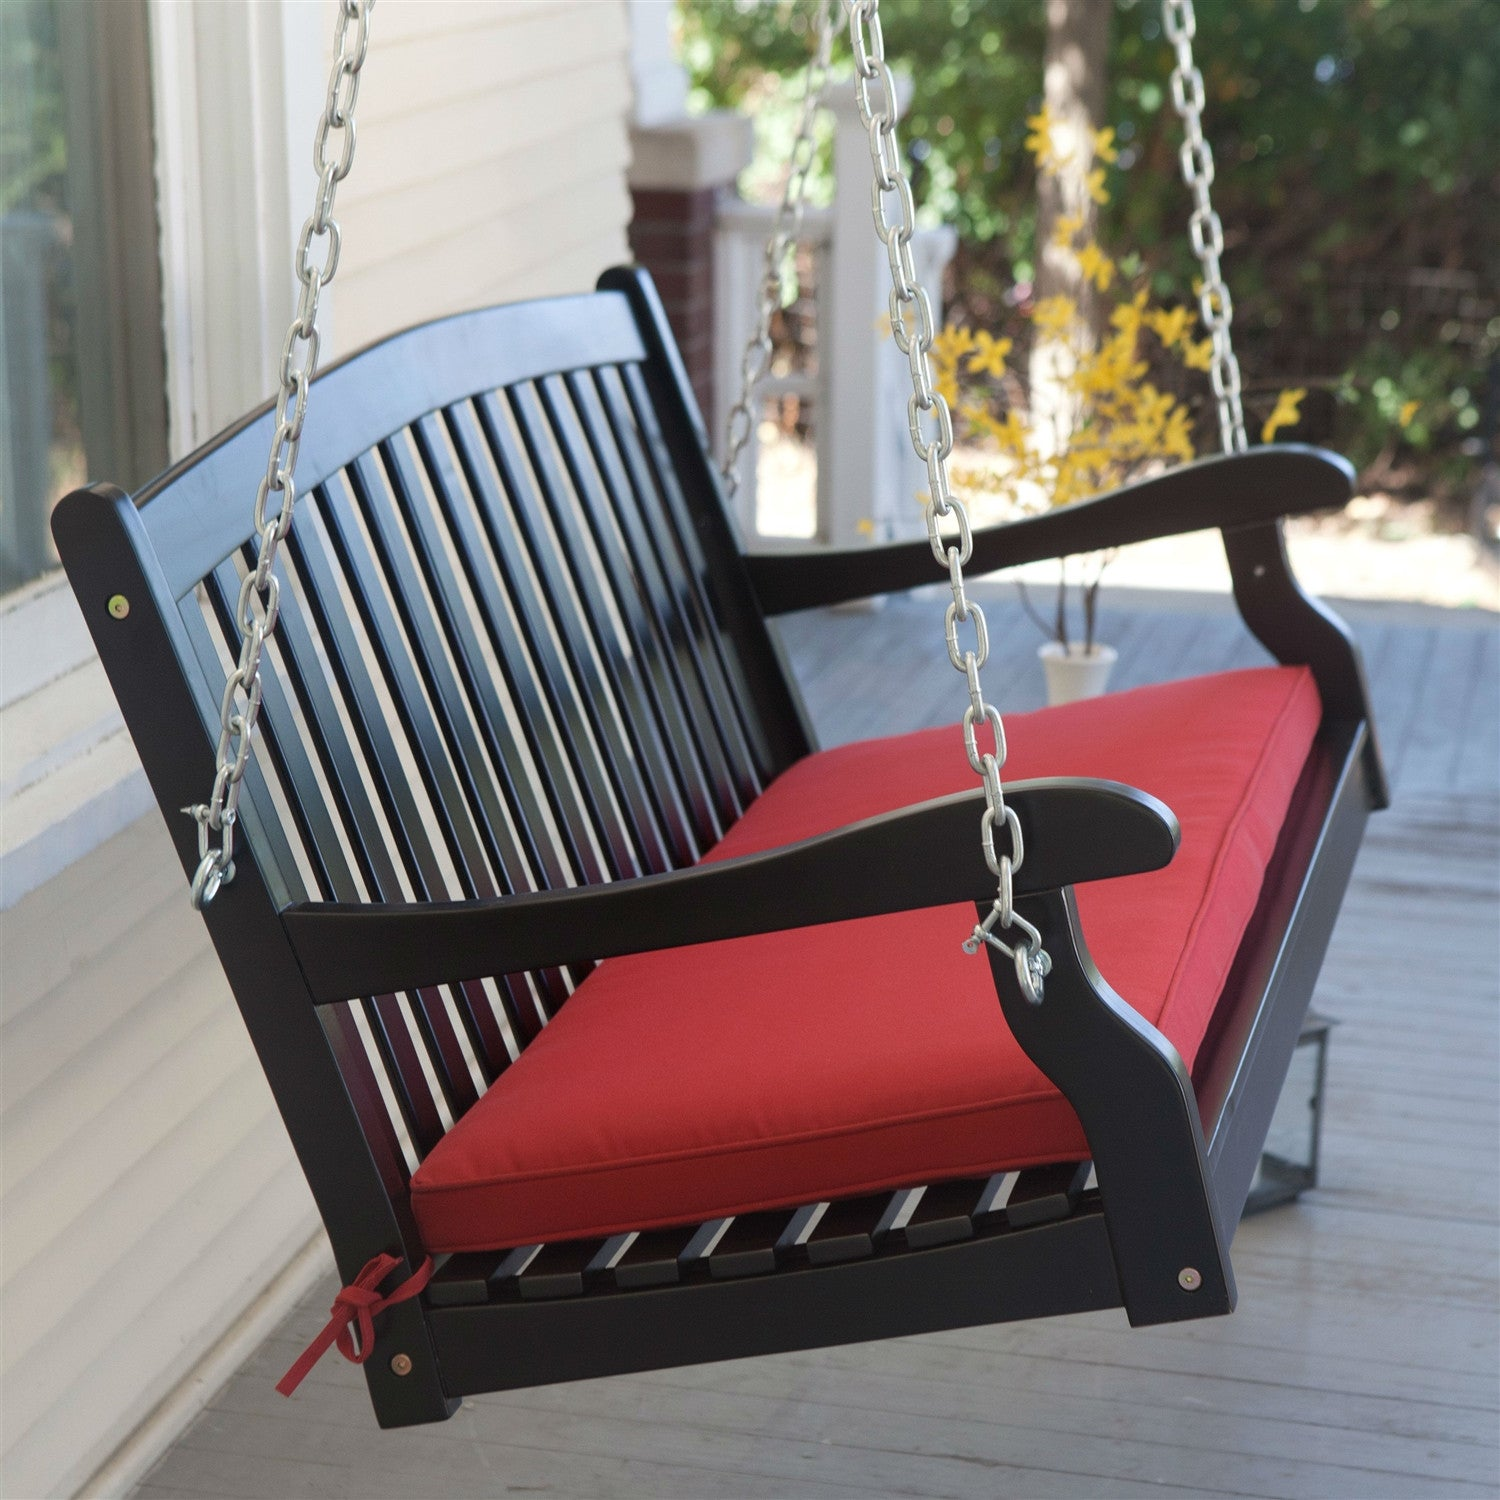 Unique Wooden Porch Swings for Sale